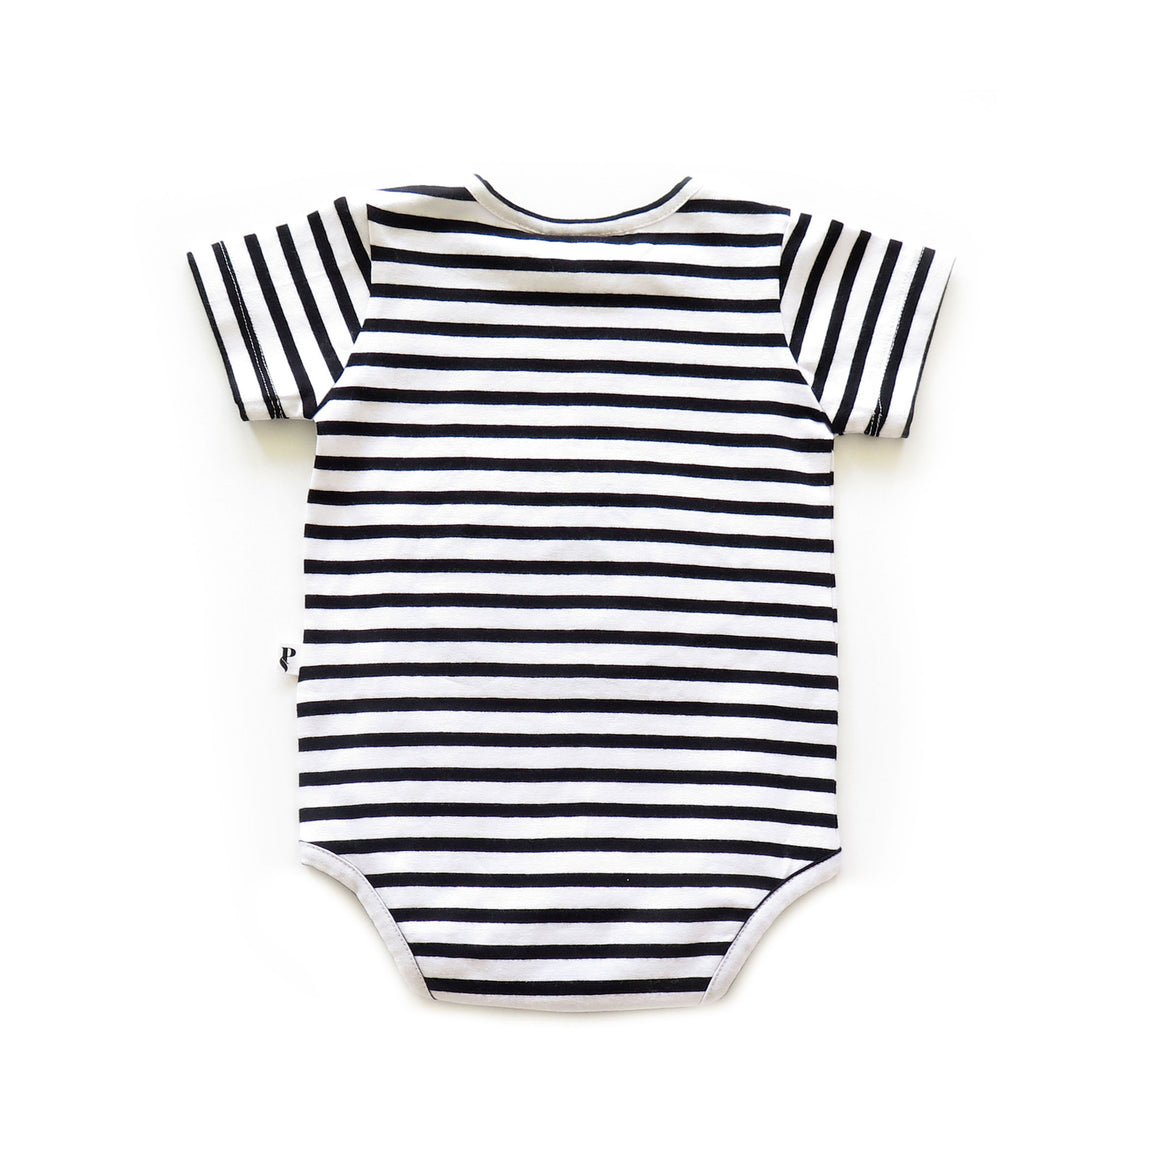 ORLANDO BODYSUIT - CHINA TOWN STRIPE